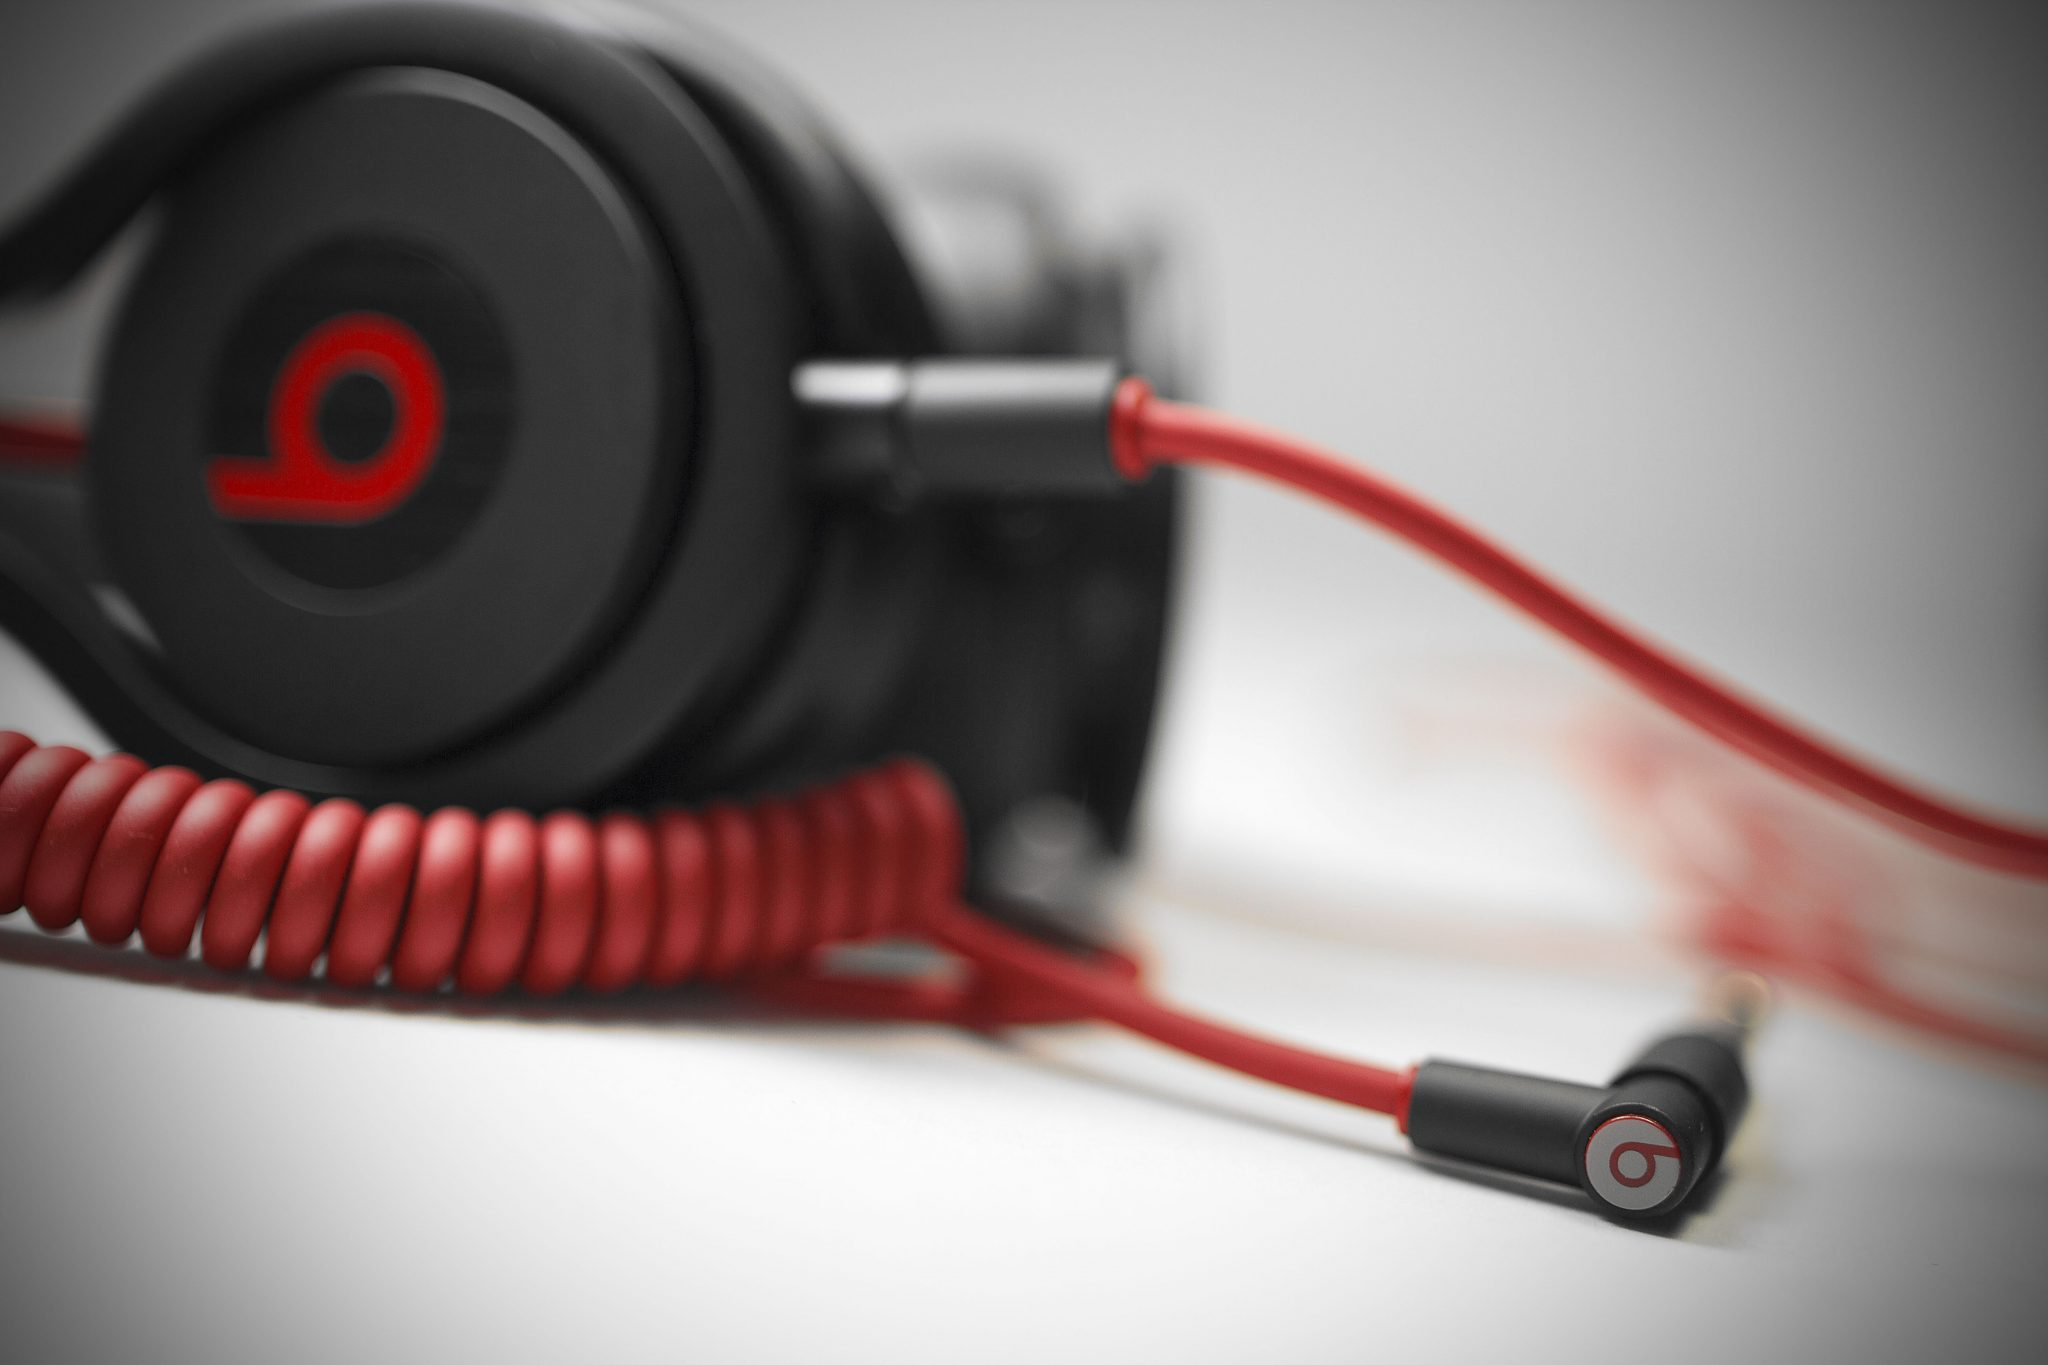 REVIEW: Beats By Dre Mixr DJ Headphones | DJWORX